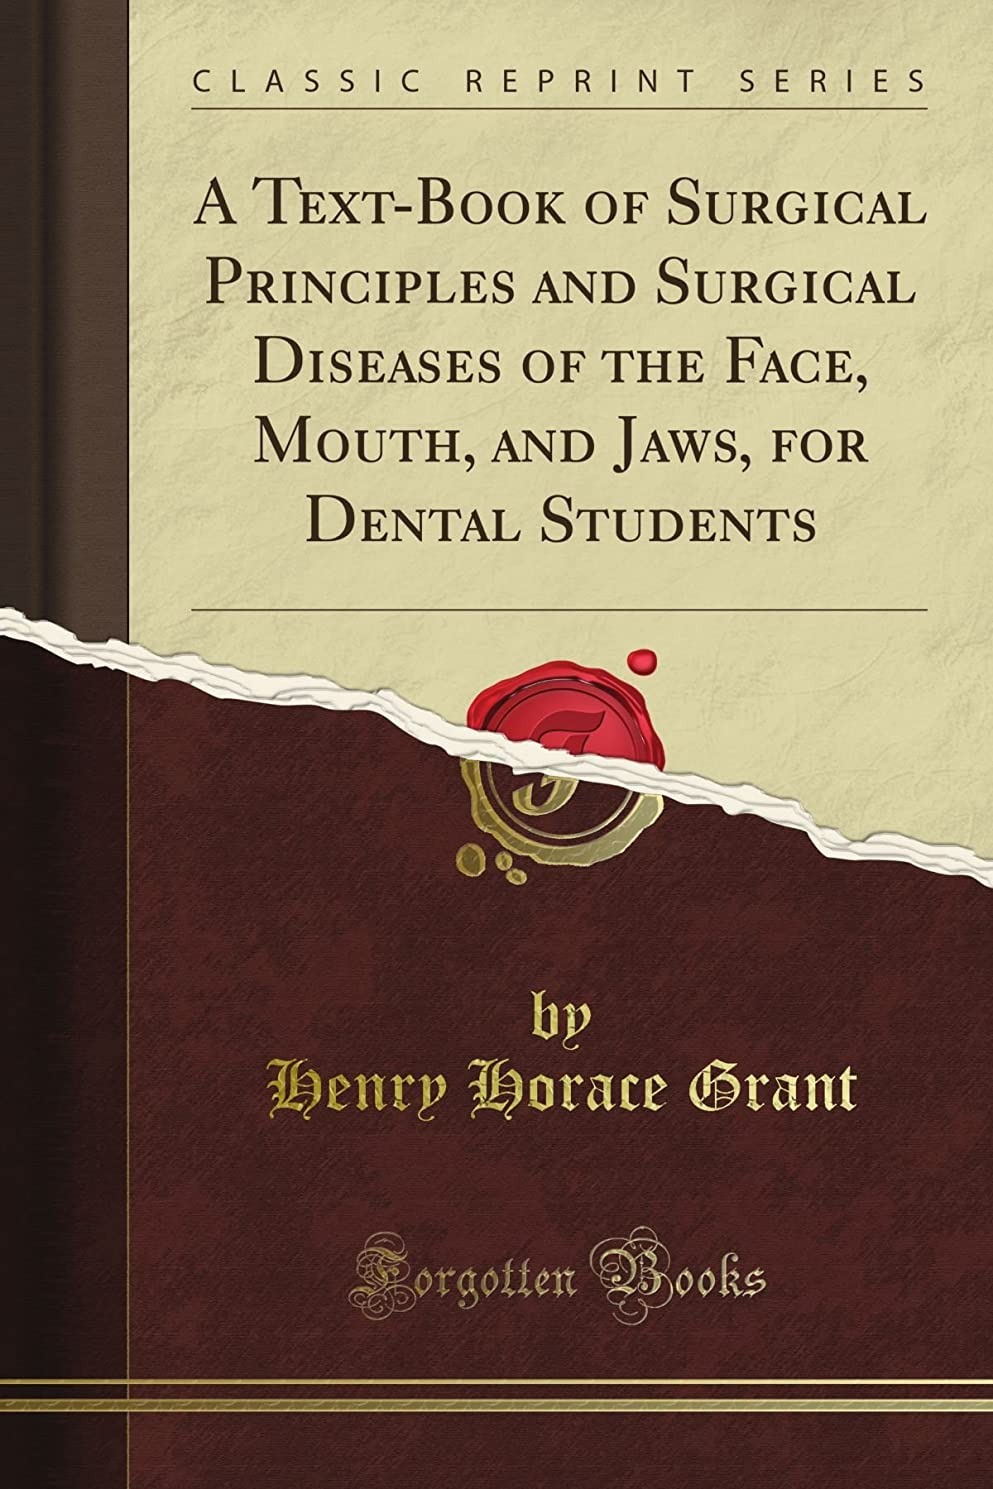 スカリー信仰キリスト教A Text-Book of Surgical Principles and Surgical Diseases of the Face, Mouth, and Jaws, for Dental Students (Classic Reprint)